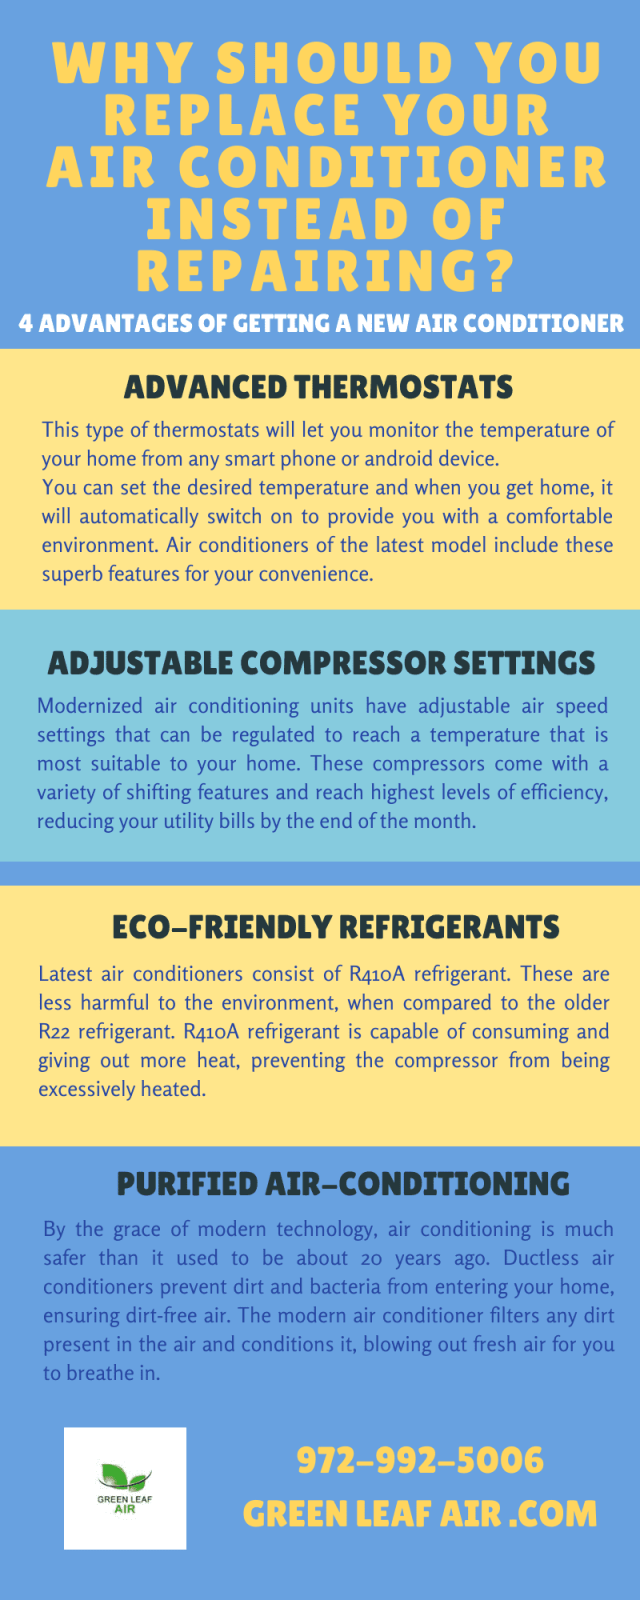 Why Should You Replace Your Air Conditioner Instead Of Repairing